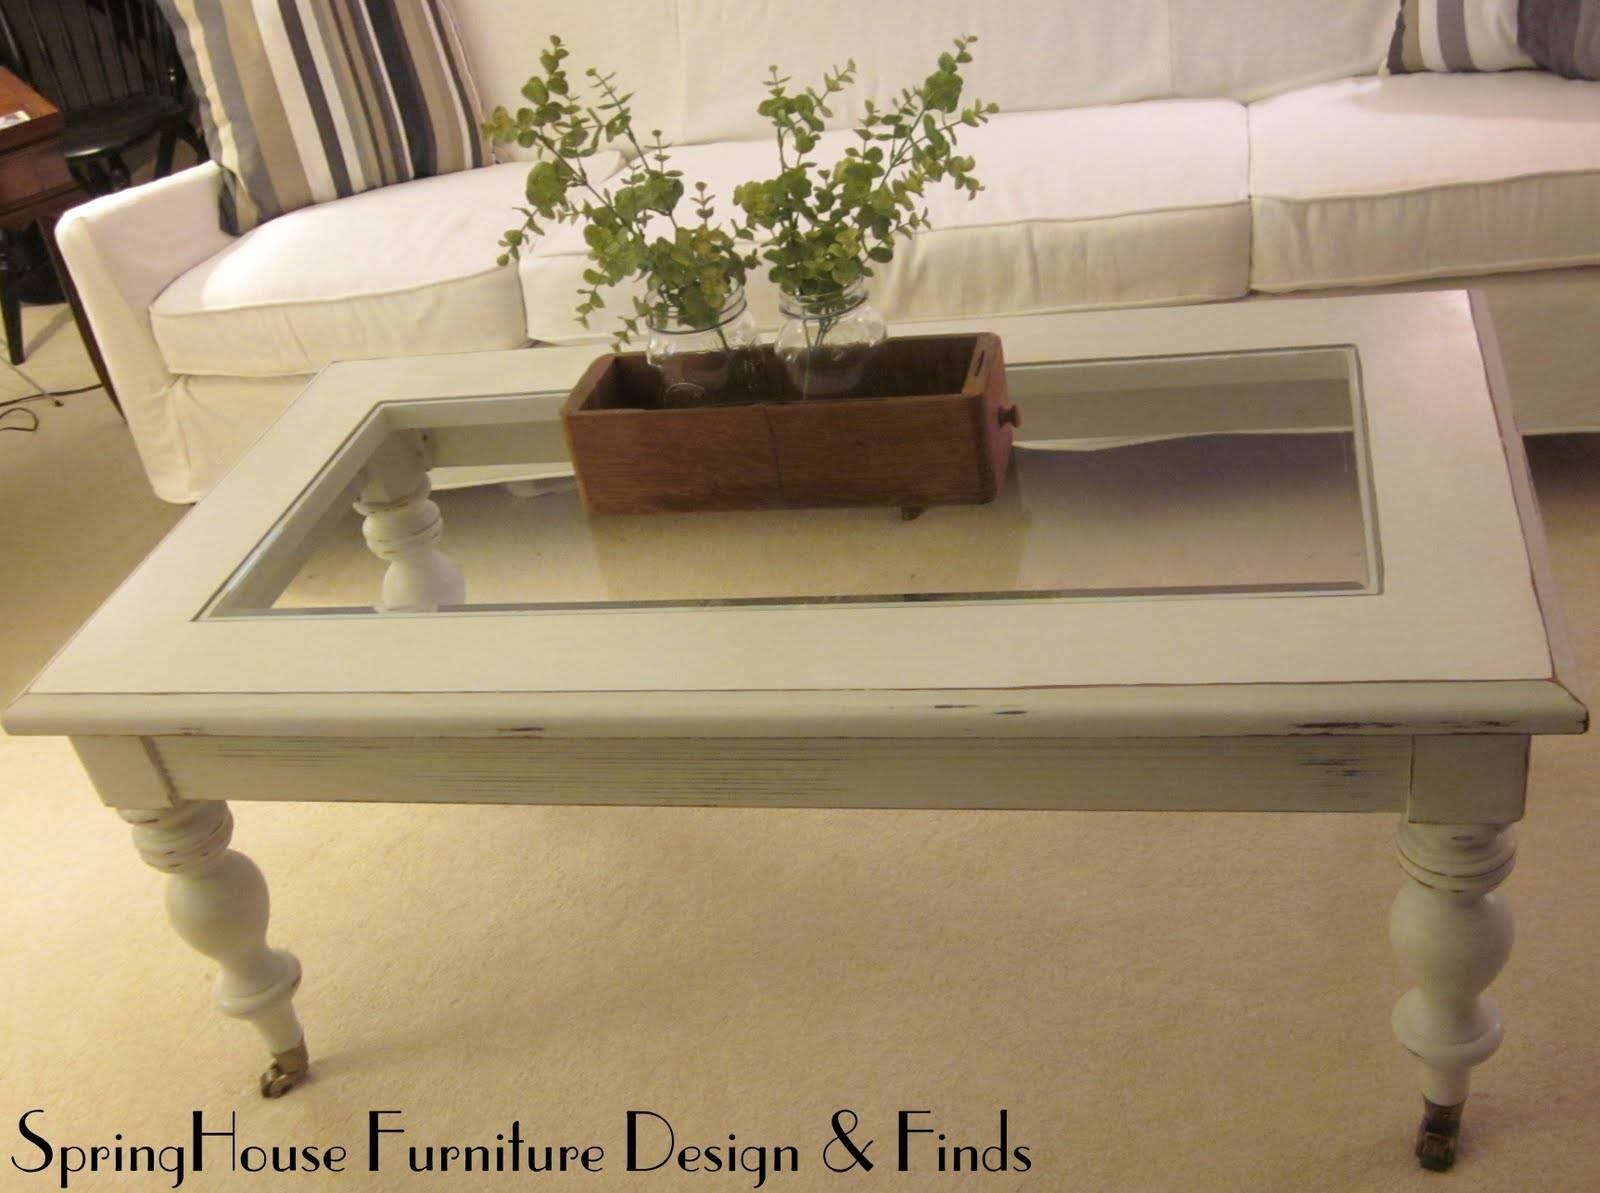 Springhouse Furniture Design & Finds: White Glass Top Coffee Table regarding White And Glass Coffee Tables (Image 25 of 30)